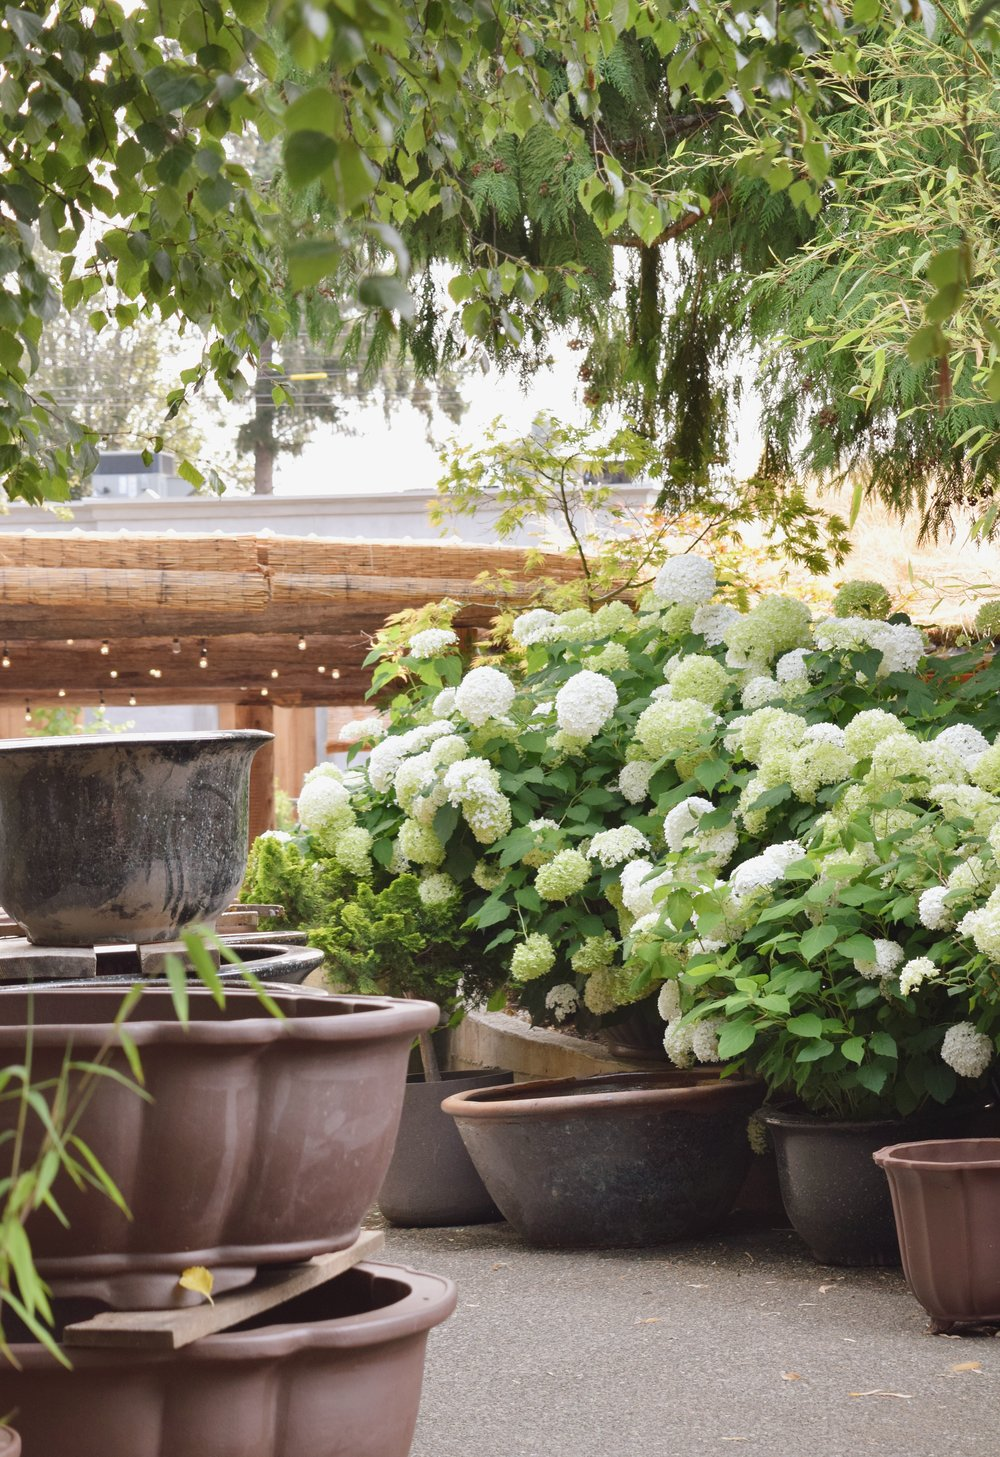 hydrangea and pottery at coombs market gardening center